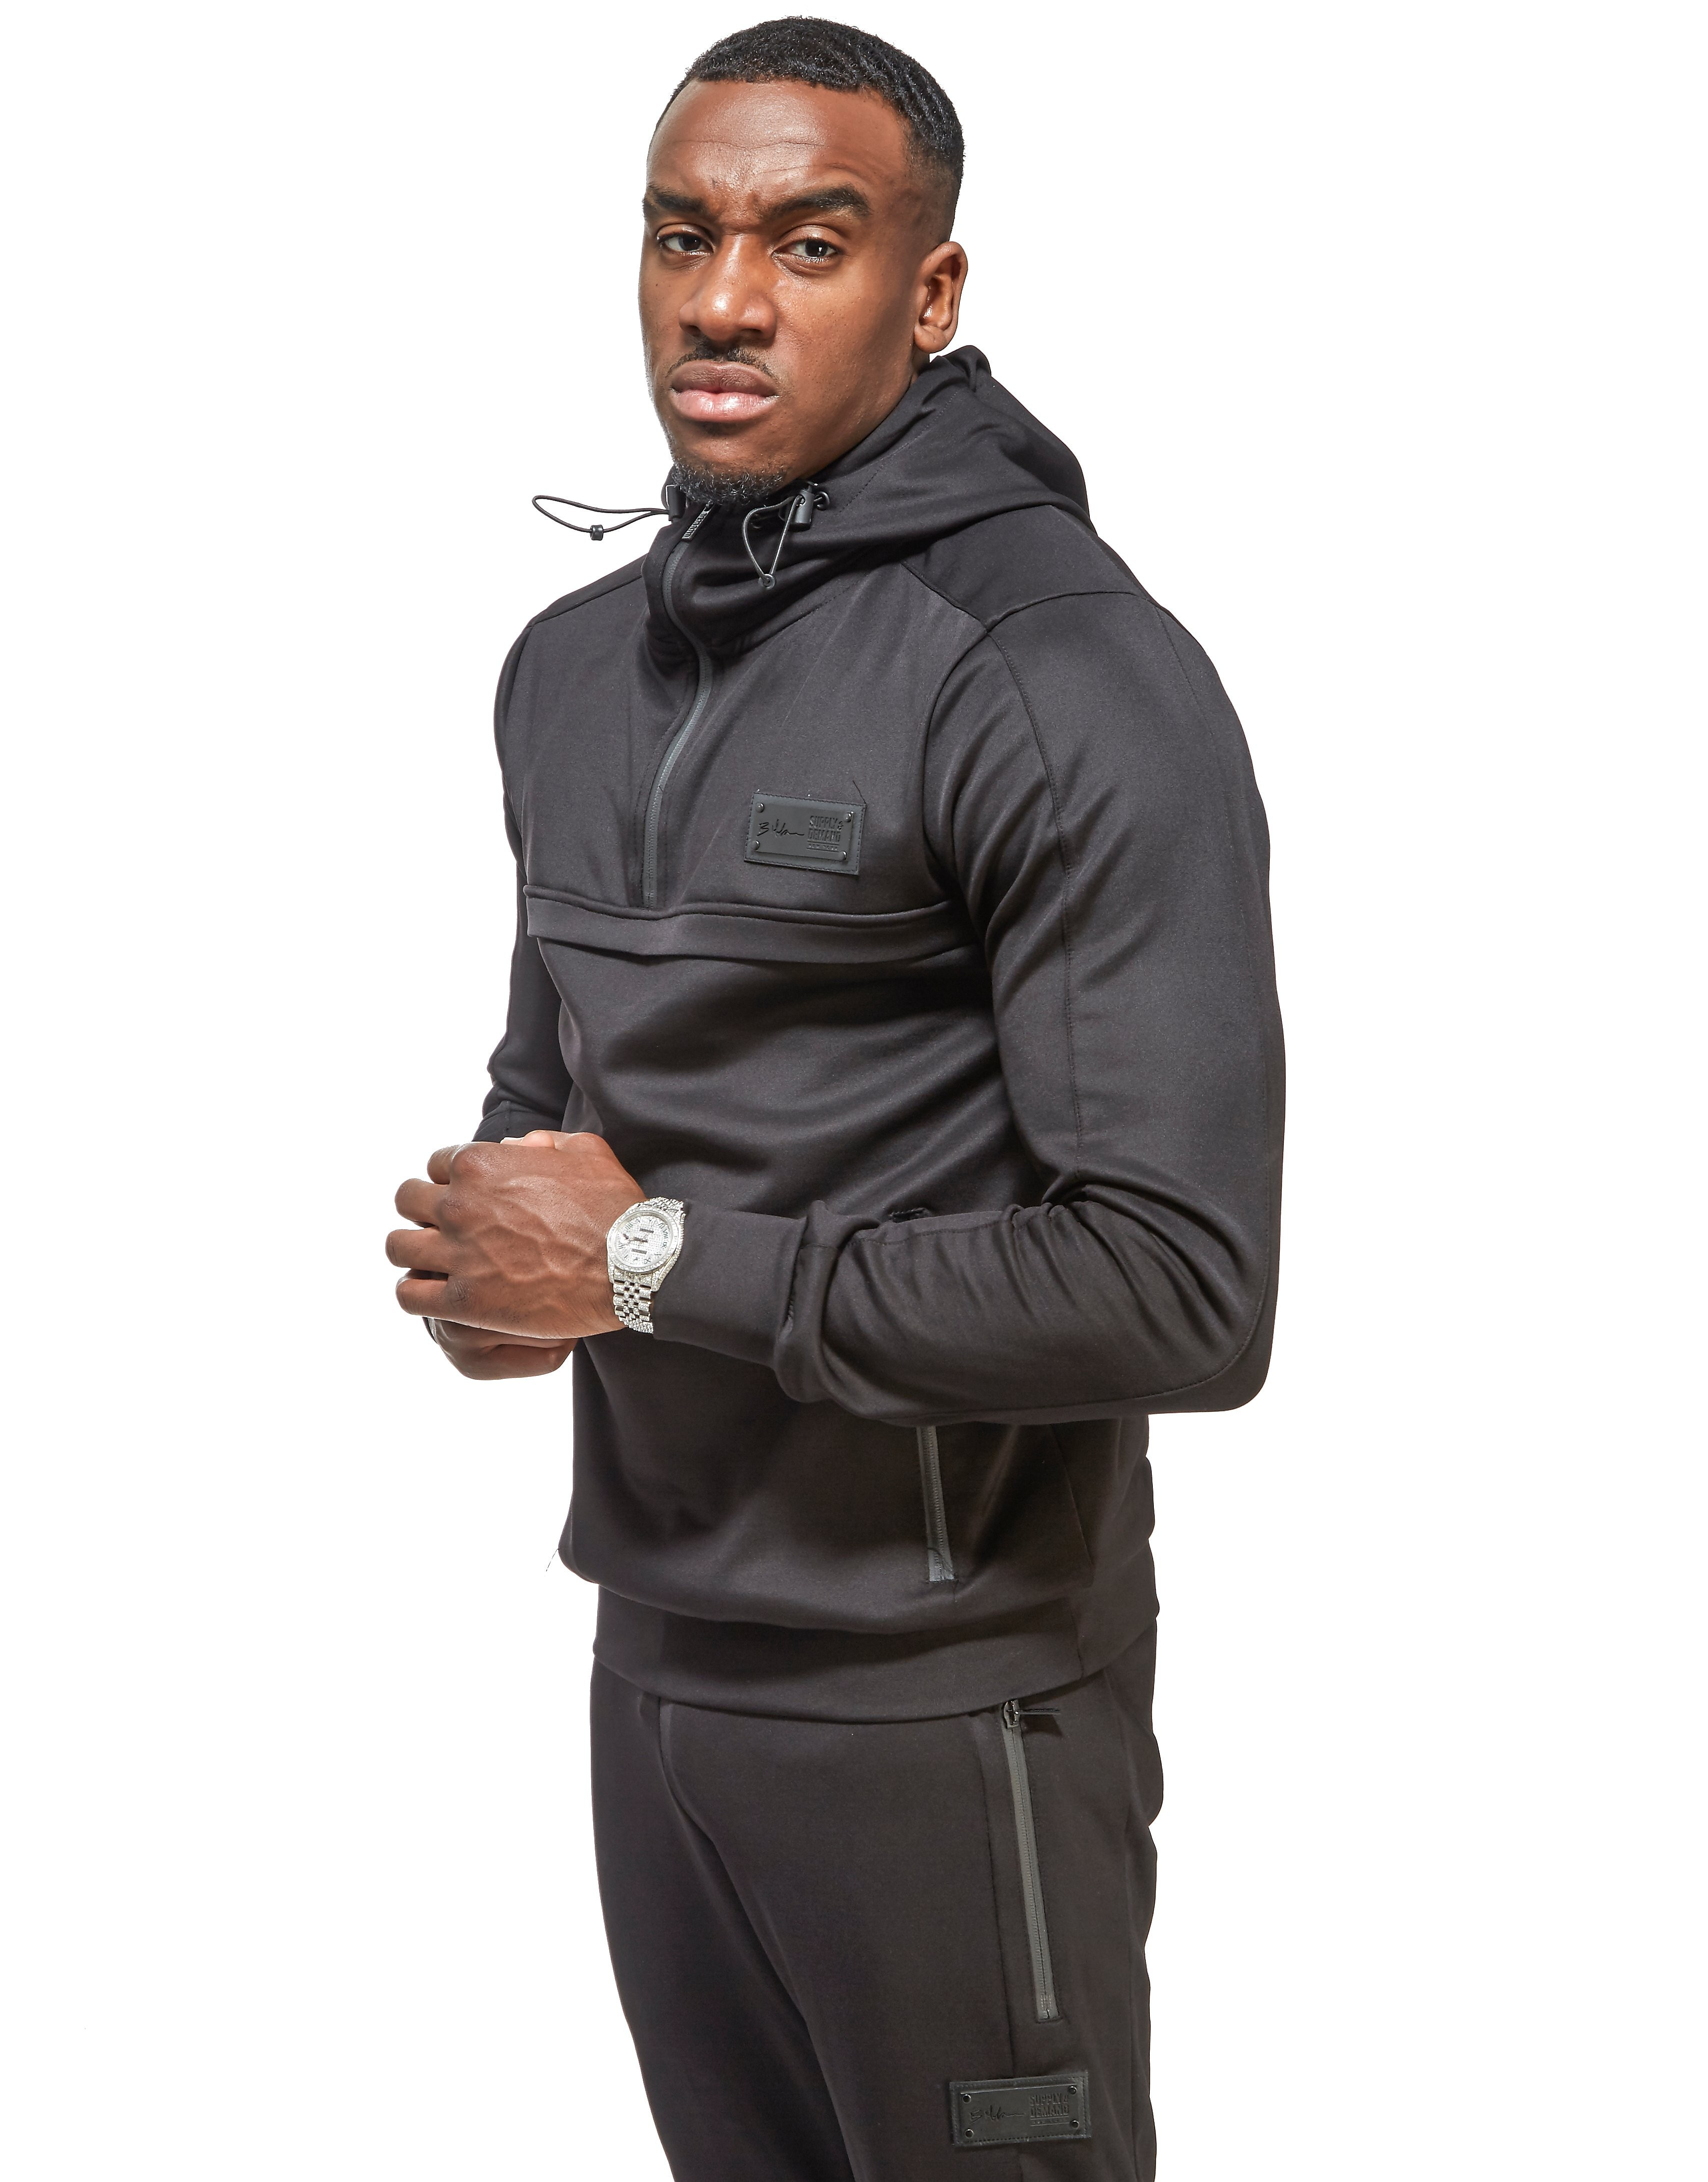 Supply & Demand Bugzy Malone BM Hoodie - Only at JD, Black